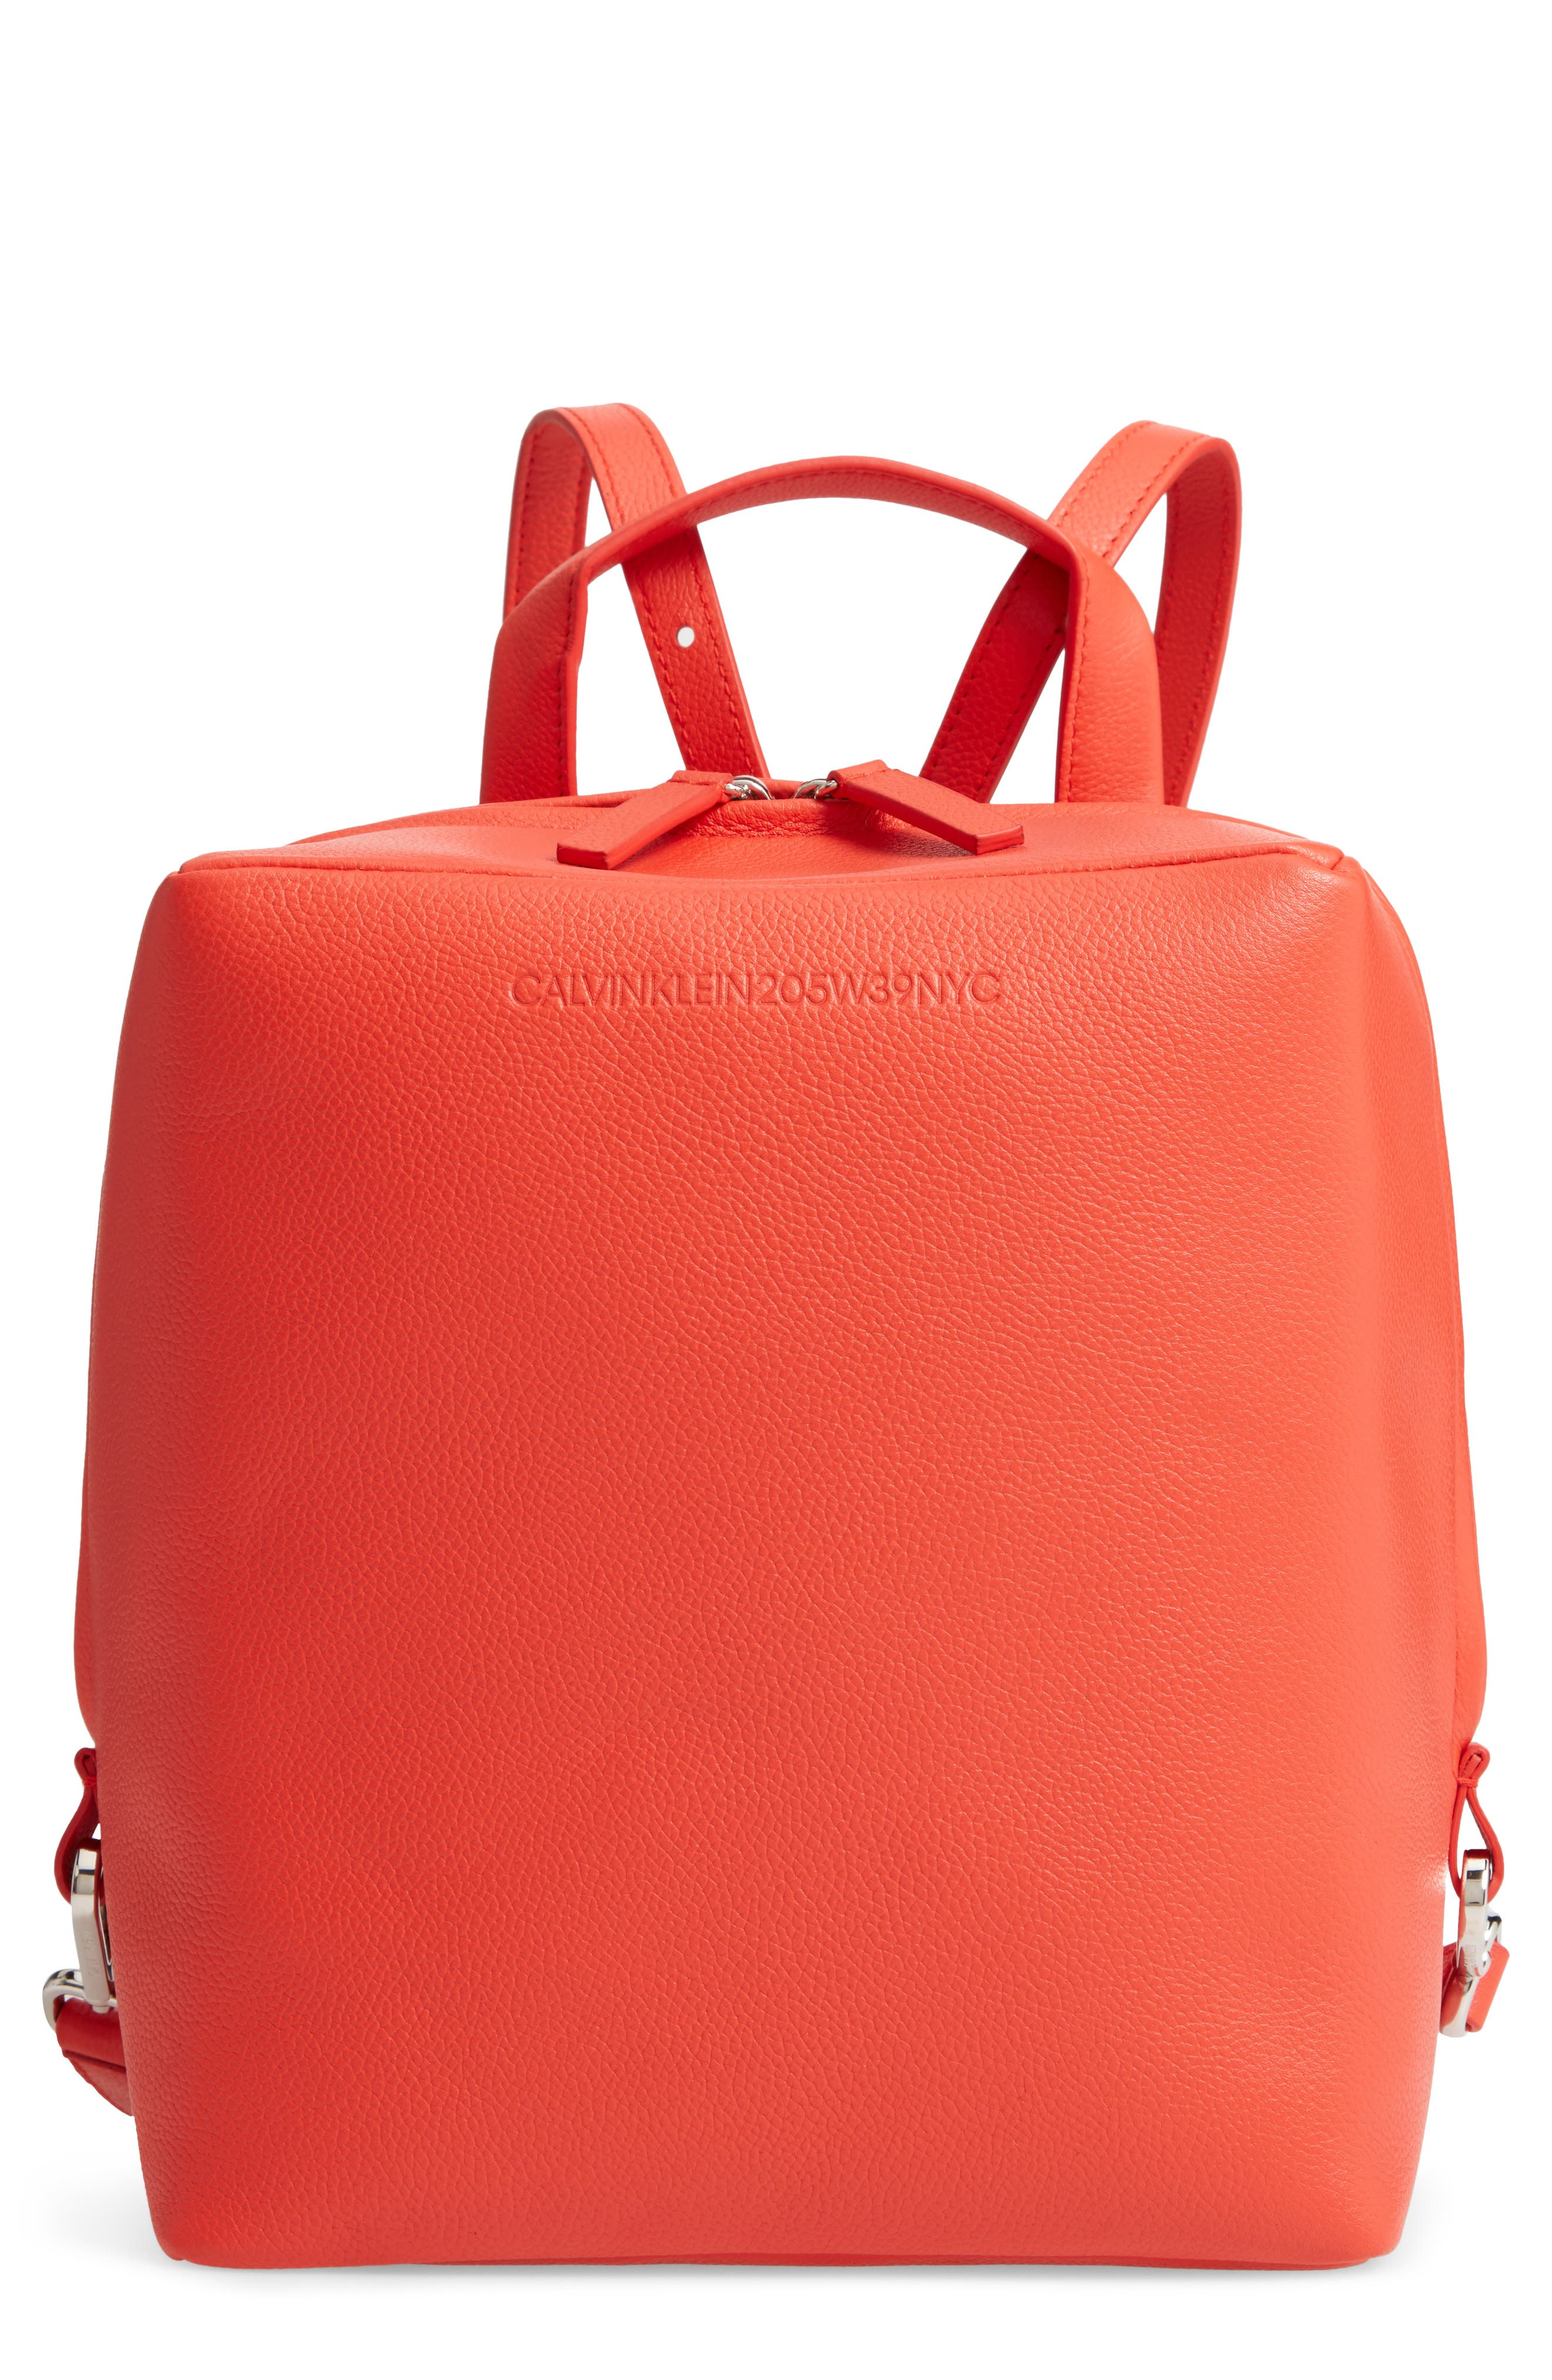 Cube Leather Backpack - Red in Campari